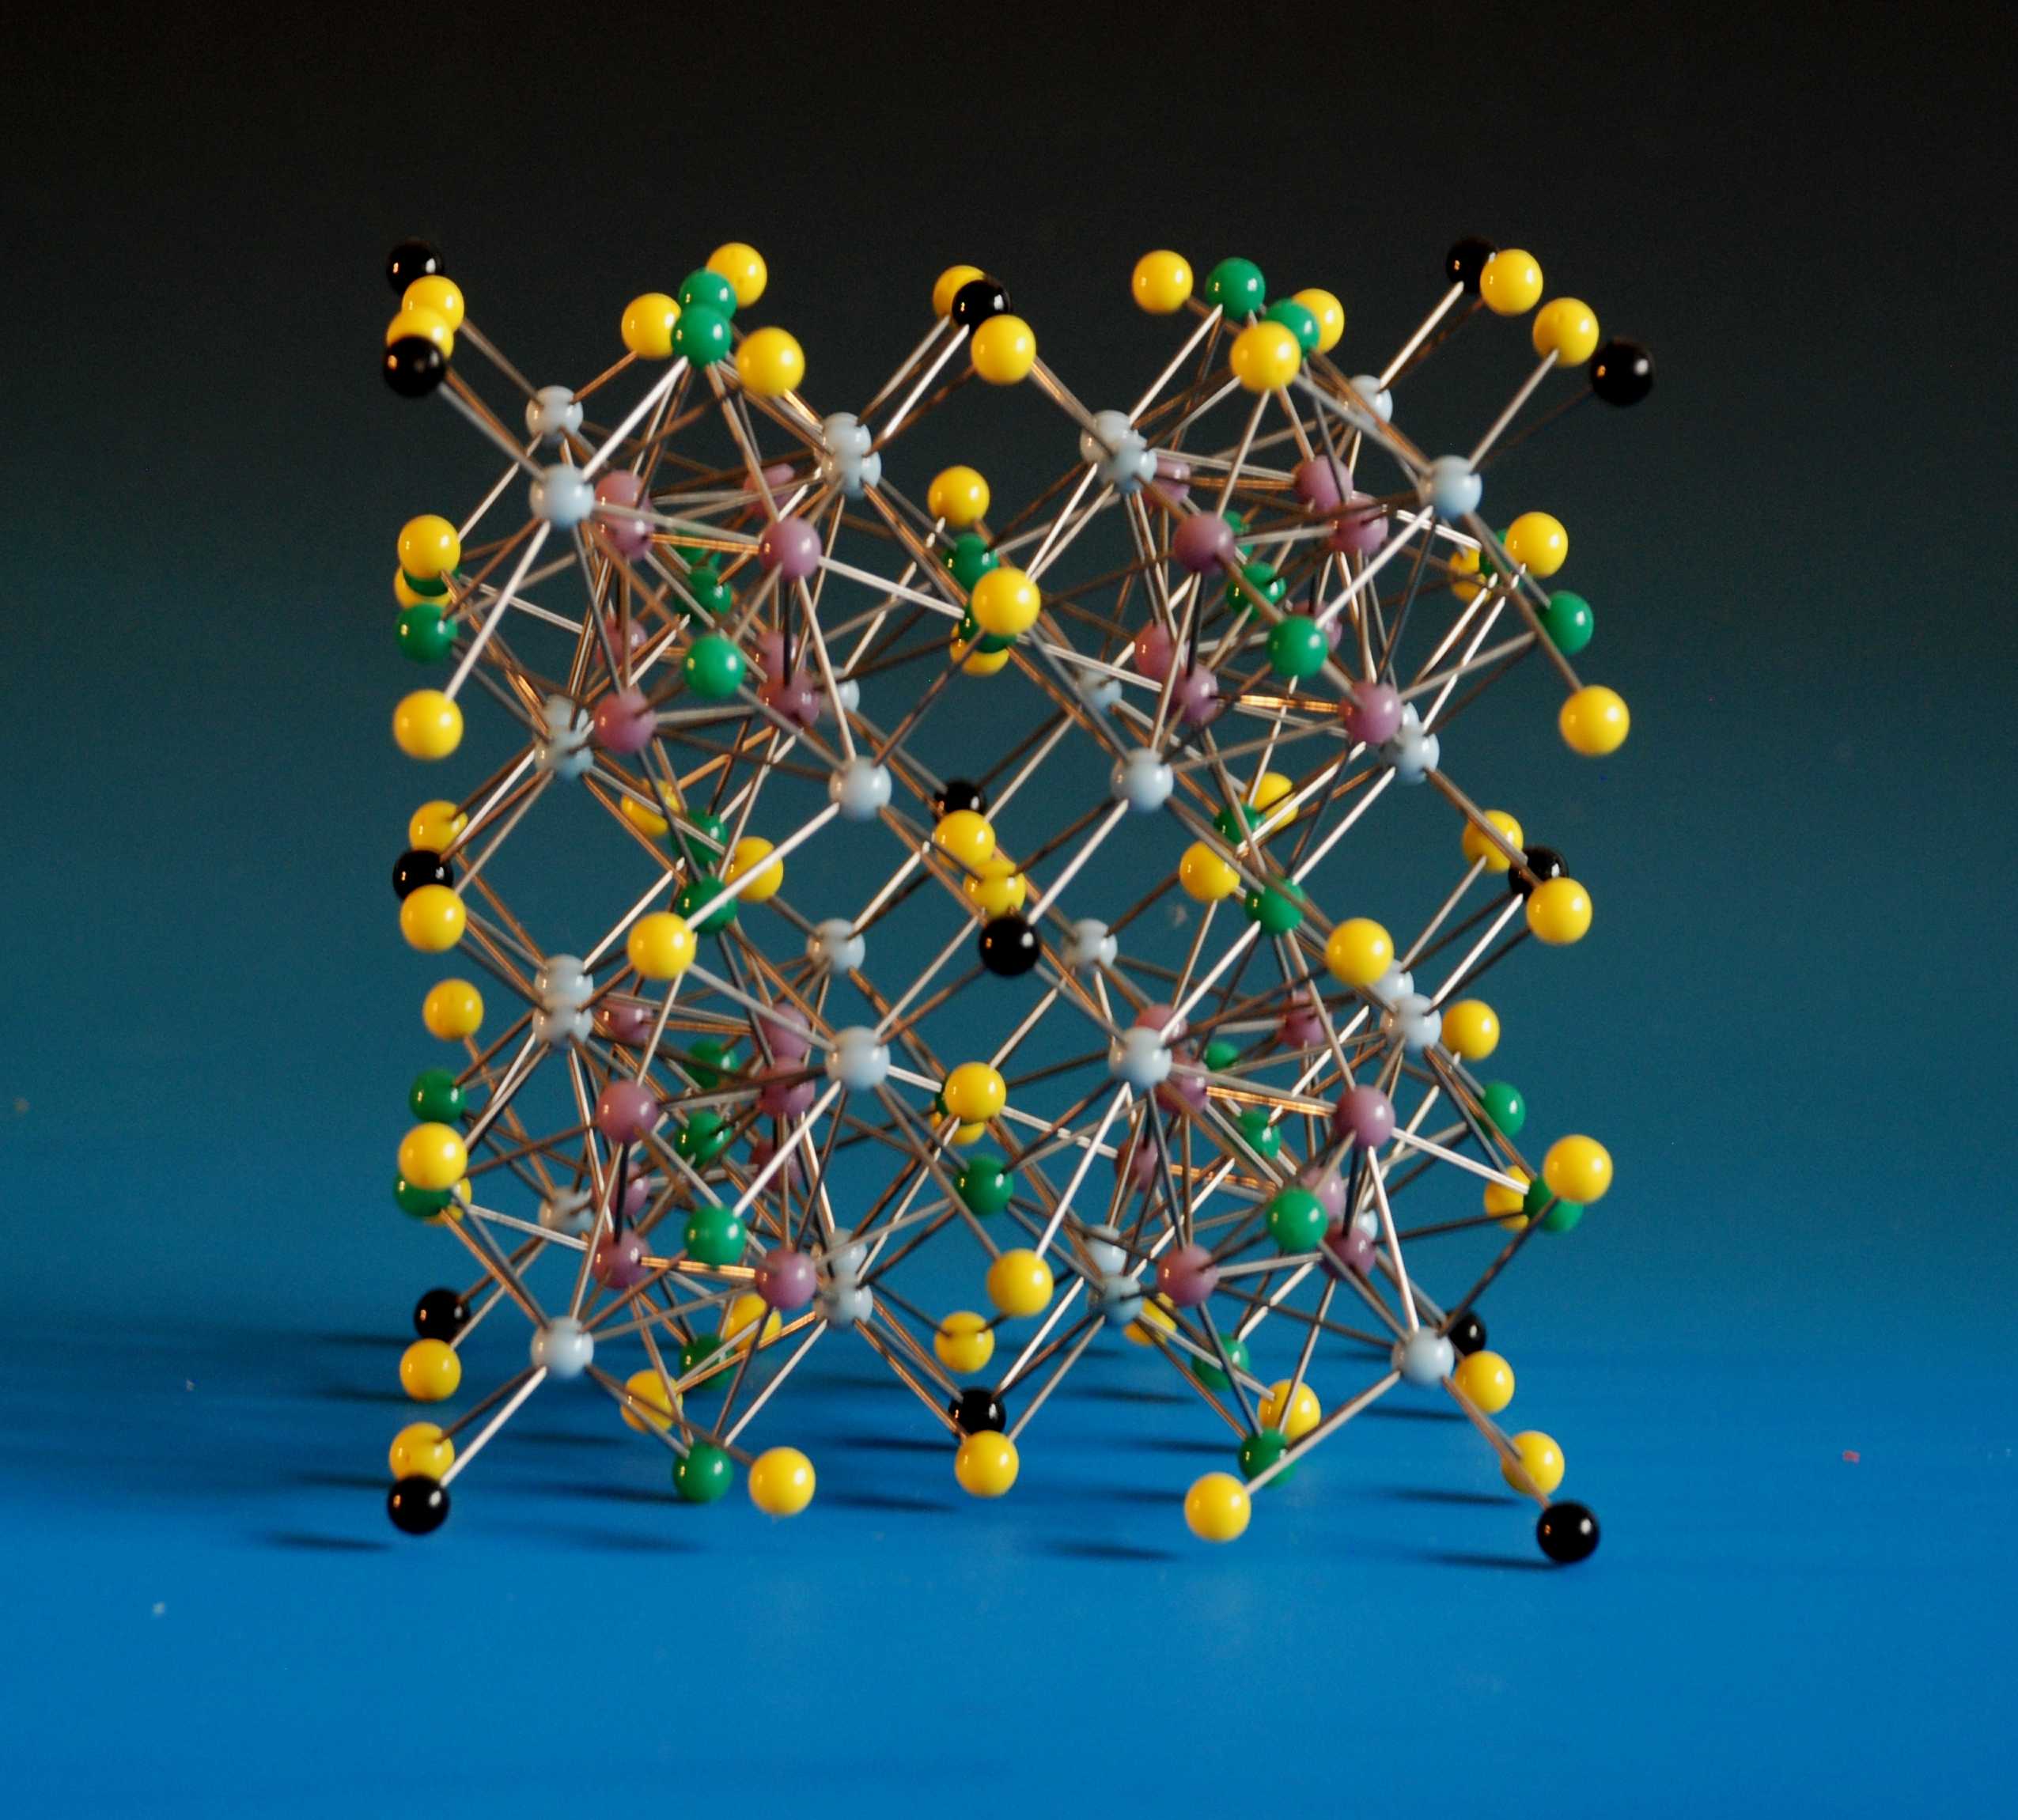 A crystal structure model of Manganese Thorium alloy